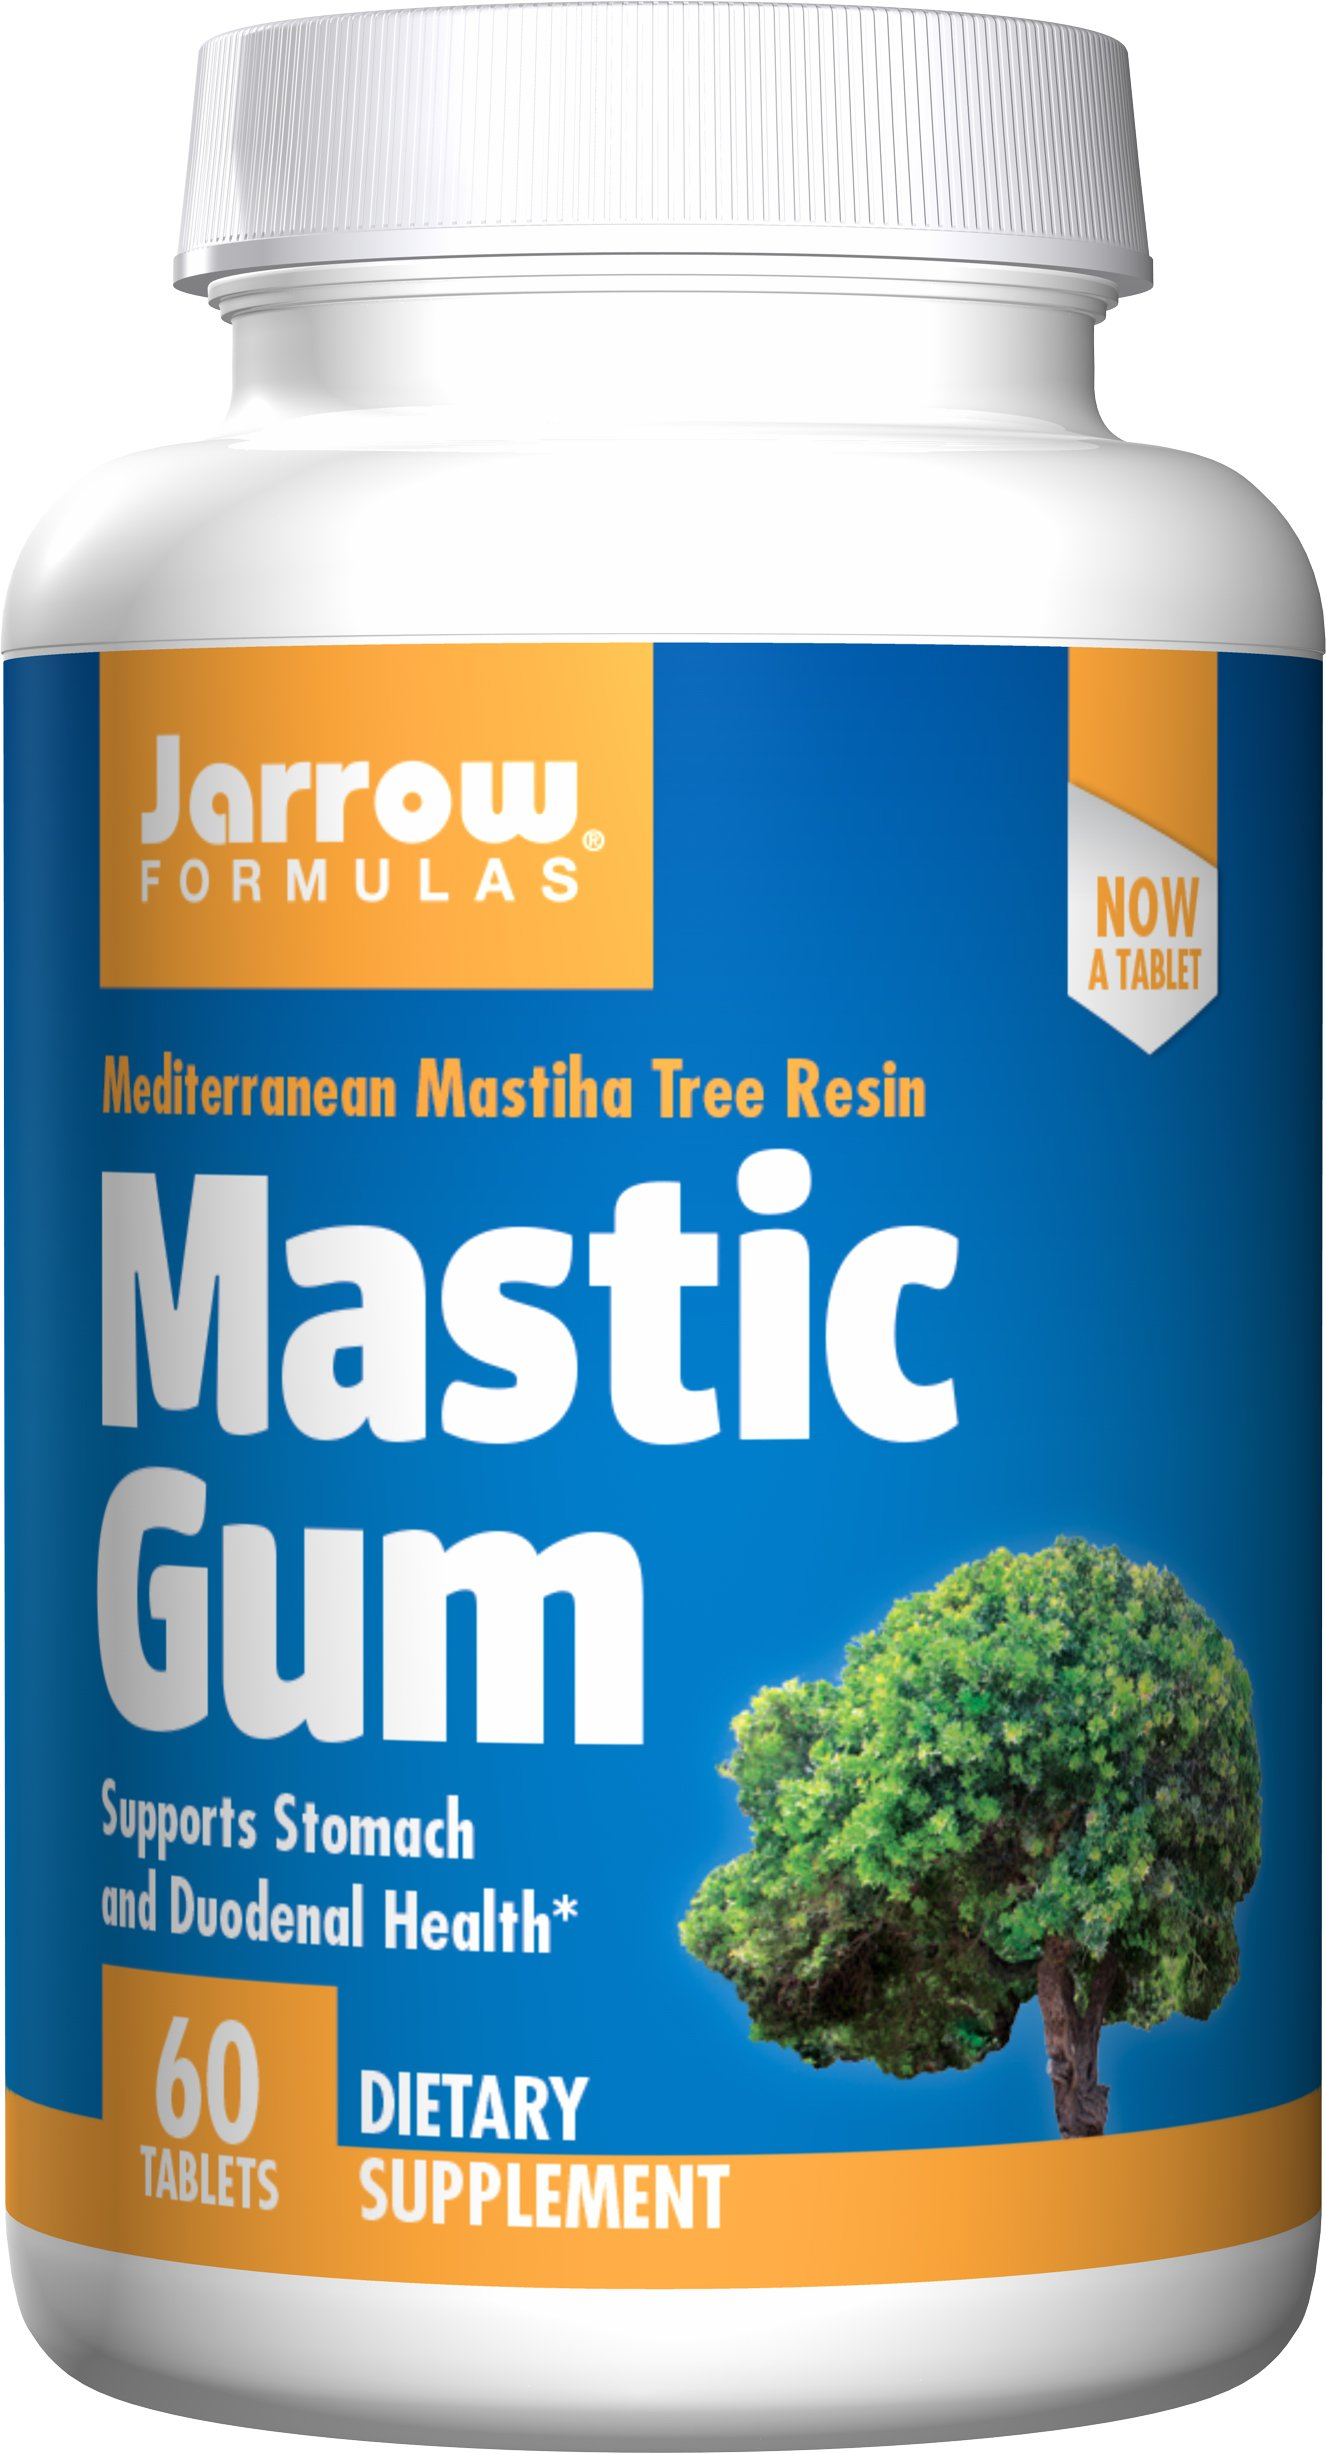 Jarrow Formulas Mastic Gum, Supports the Stomach and Duodenal Health, 60 Tablets